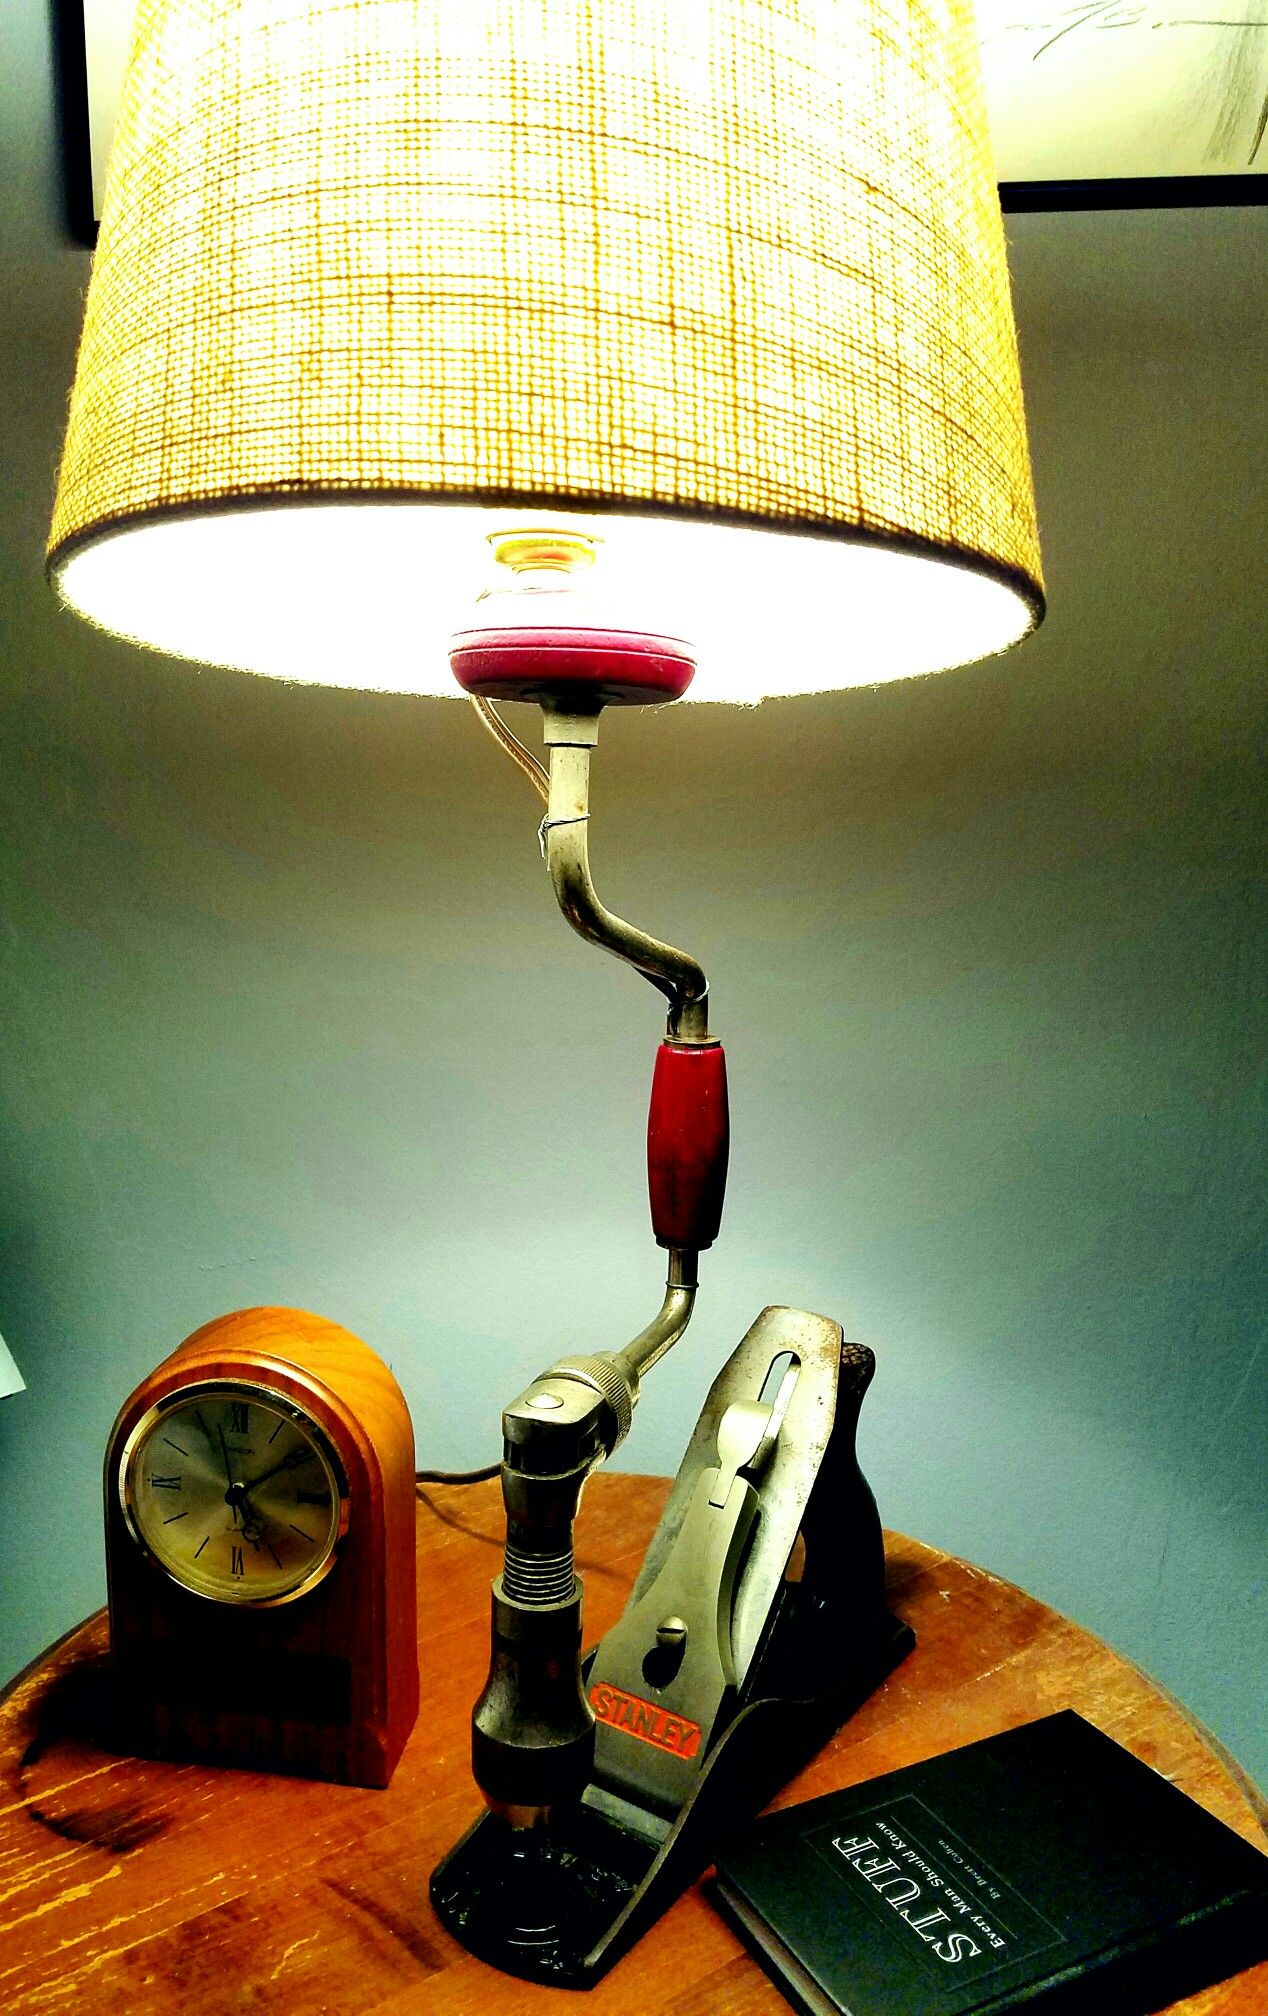 Old Hand Lamp Lamp Light With Cable Old Vintage Workshop Work Lamp 20th Century Lamps